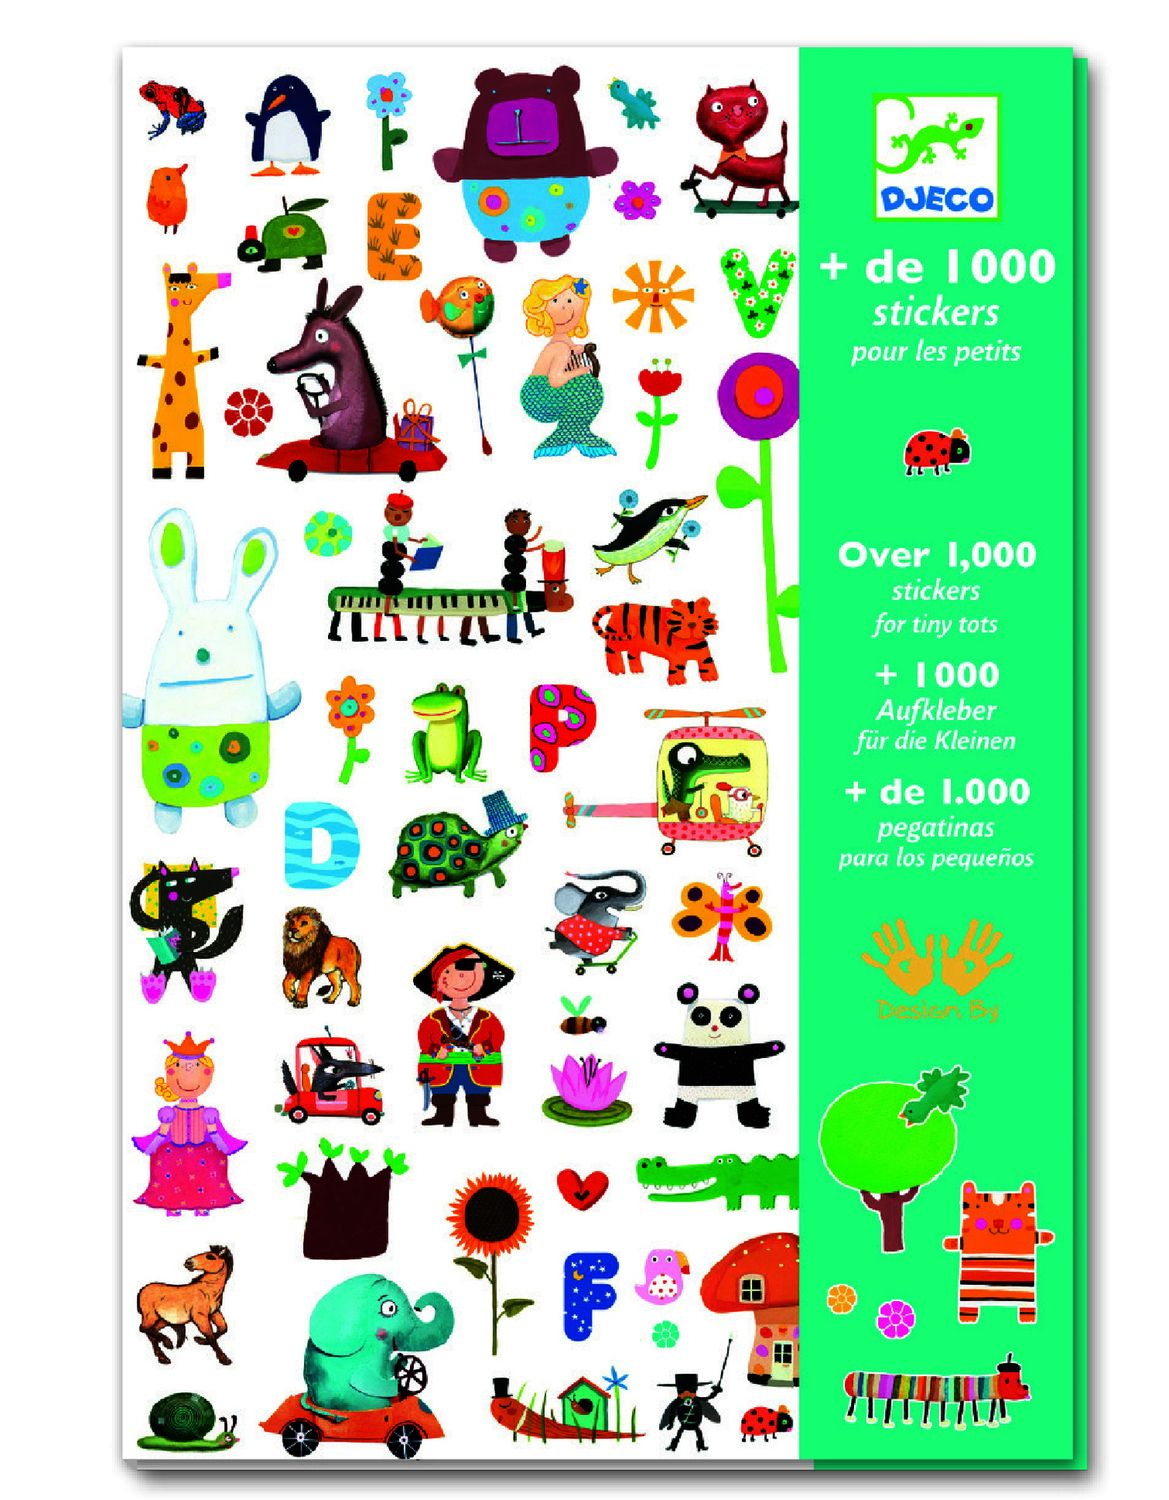 Djeco Stickers For Little Ones Create With Stickers